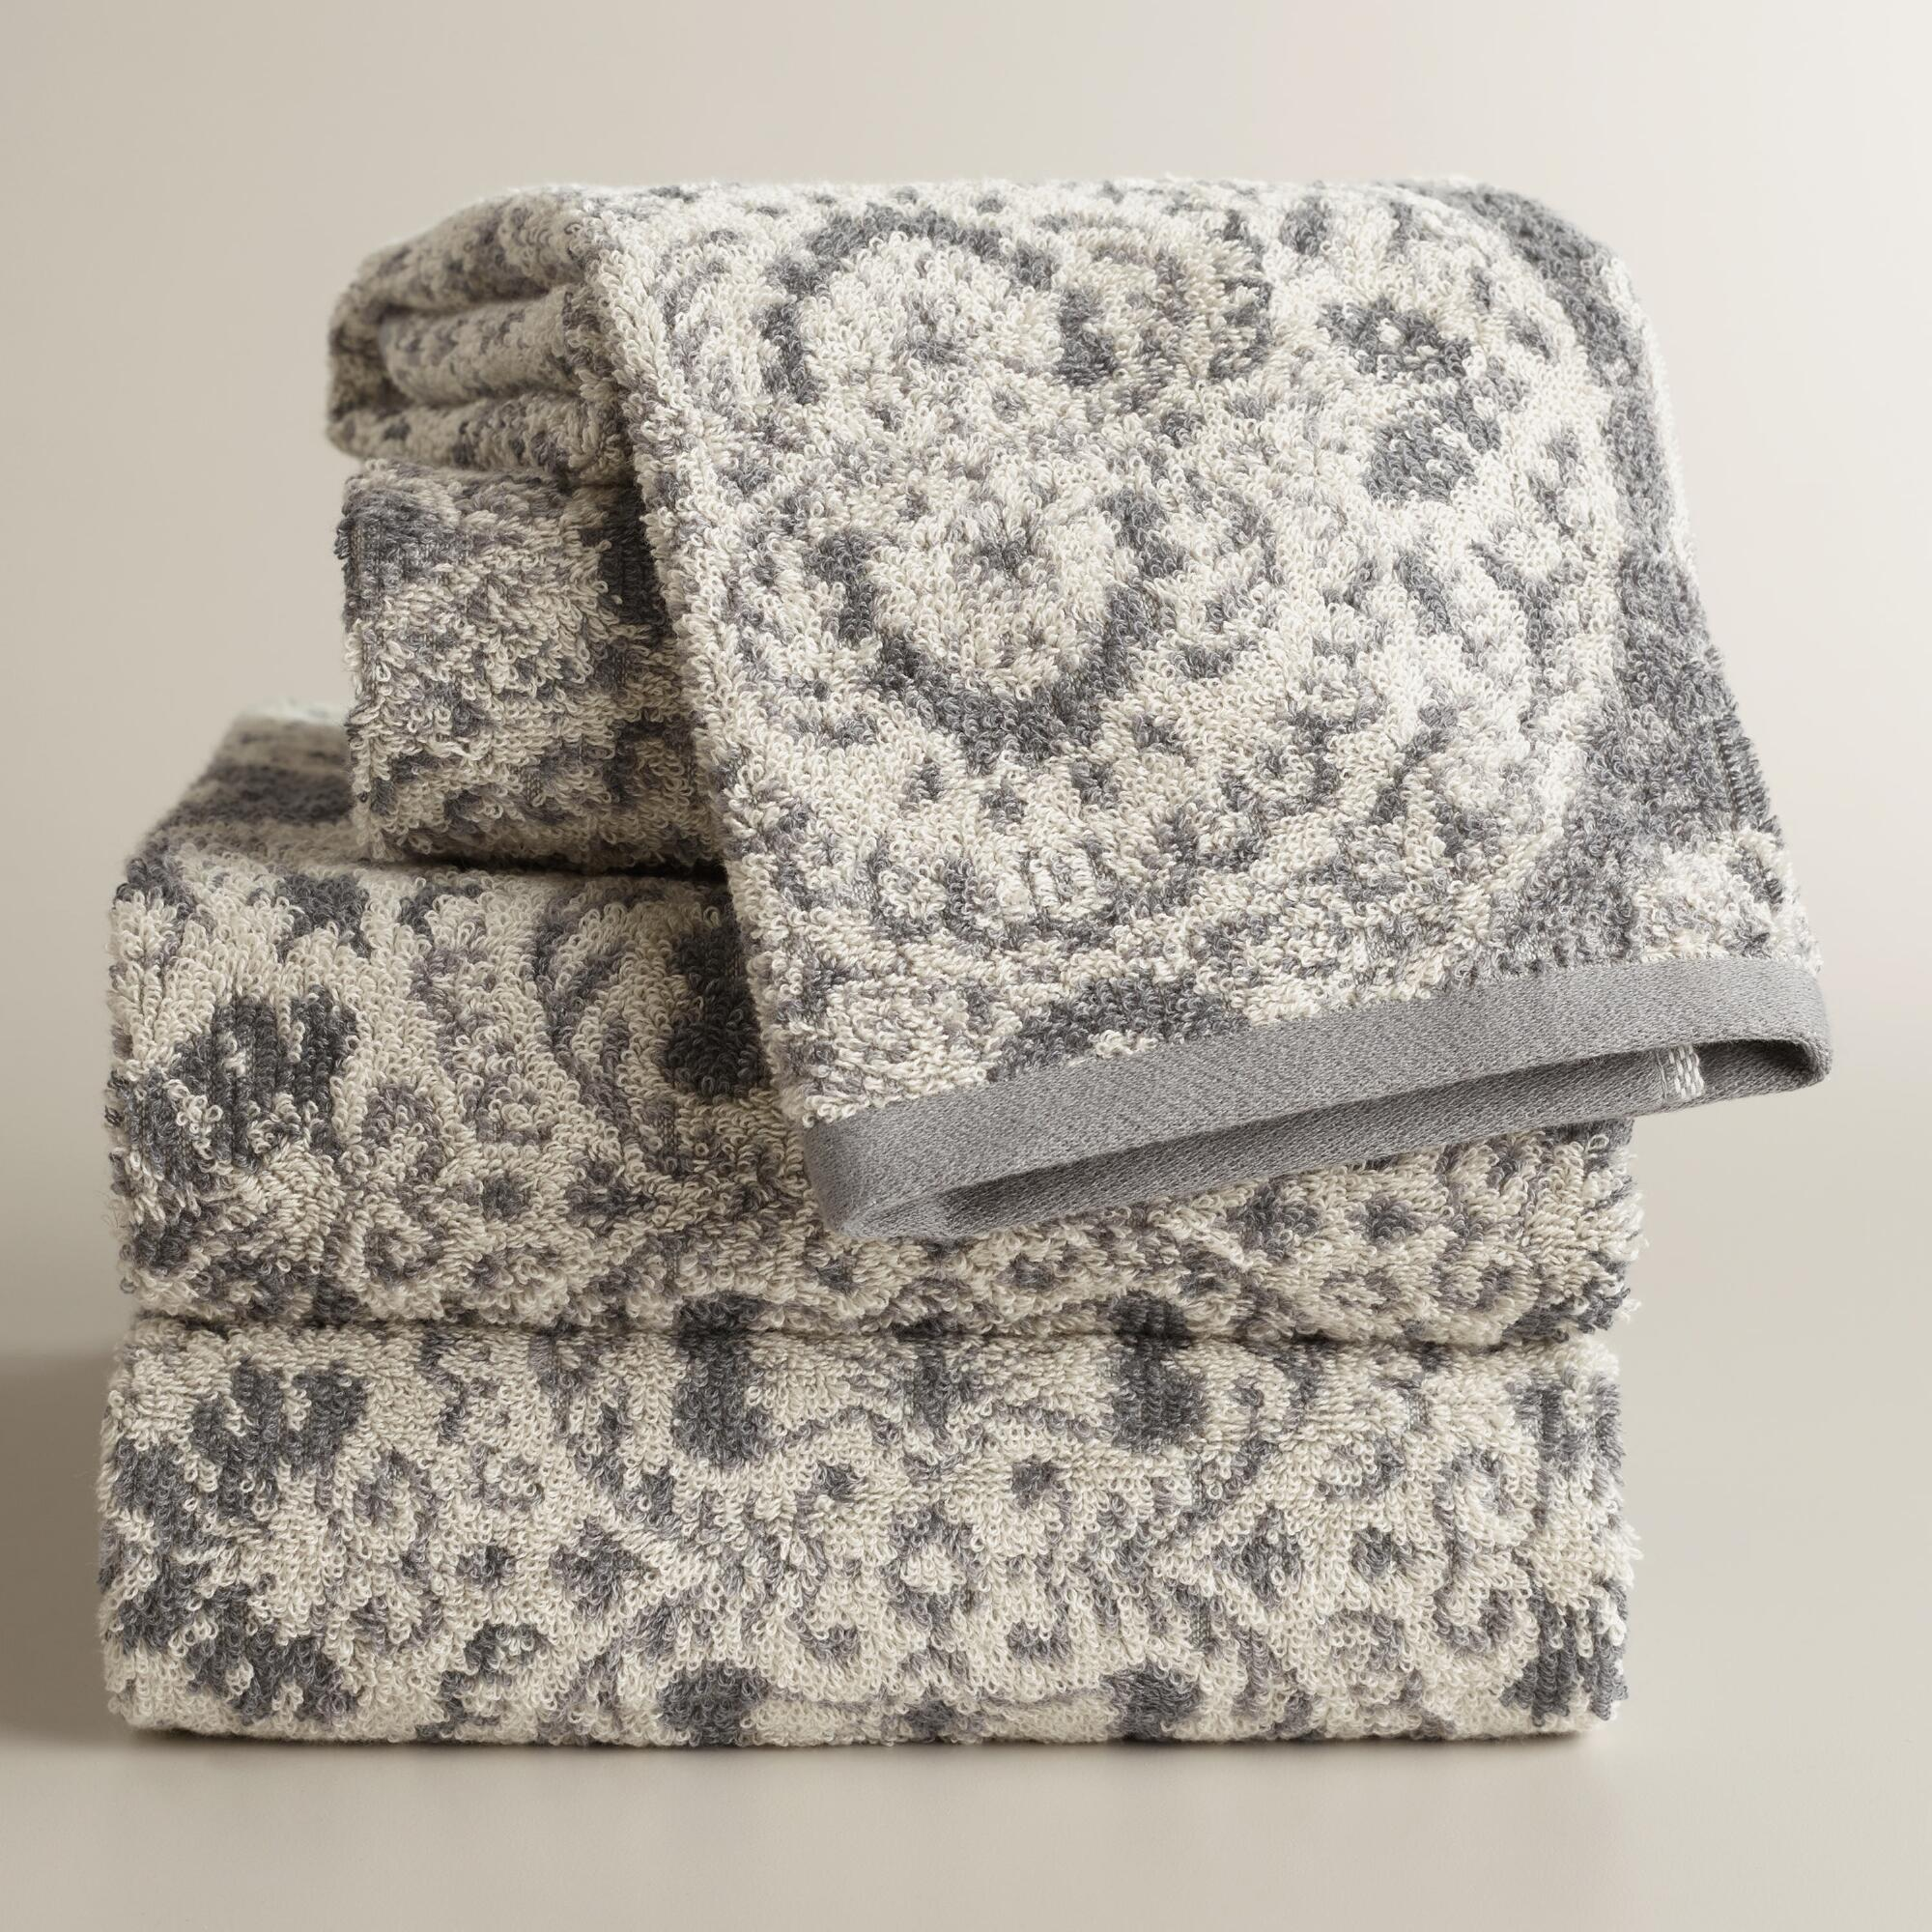 Jacquard Towels. Showing 40 of results that match your query. Search Product Result. Product - Zero Twist Jacquard 6-Piece Bath Towel Set - Denim. Product Image. Price $ Product Title. Zero Twist Jacquard 6-Piece Bath Towel Set - Denim. Product - Sanderson Fern Jacquard Cotton Bath Towel.